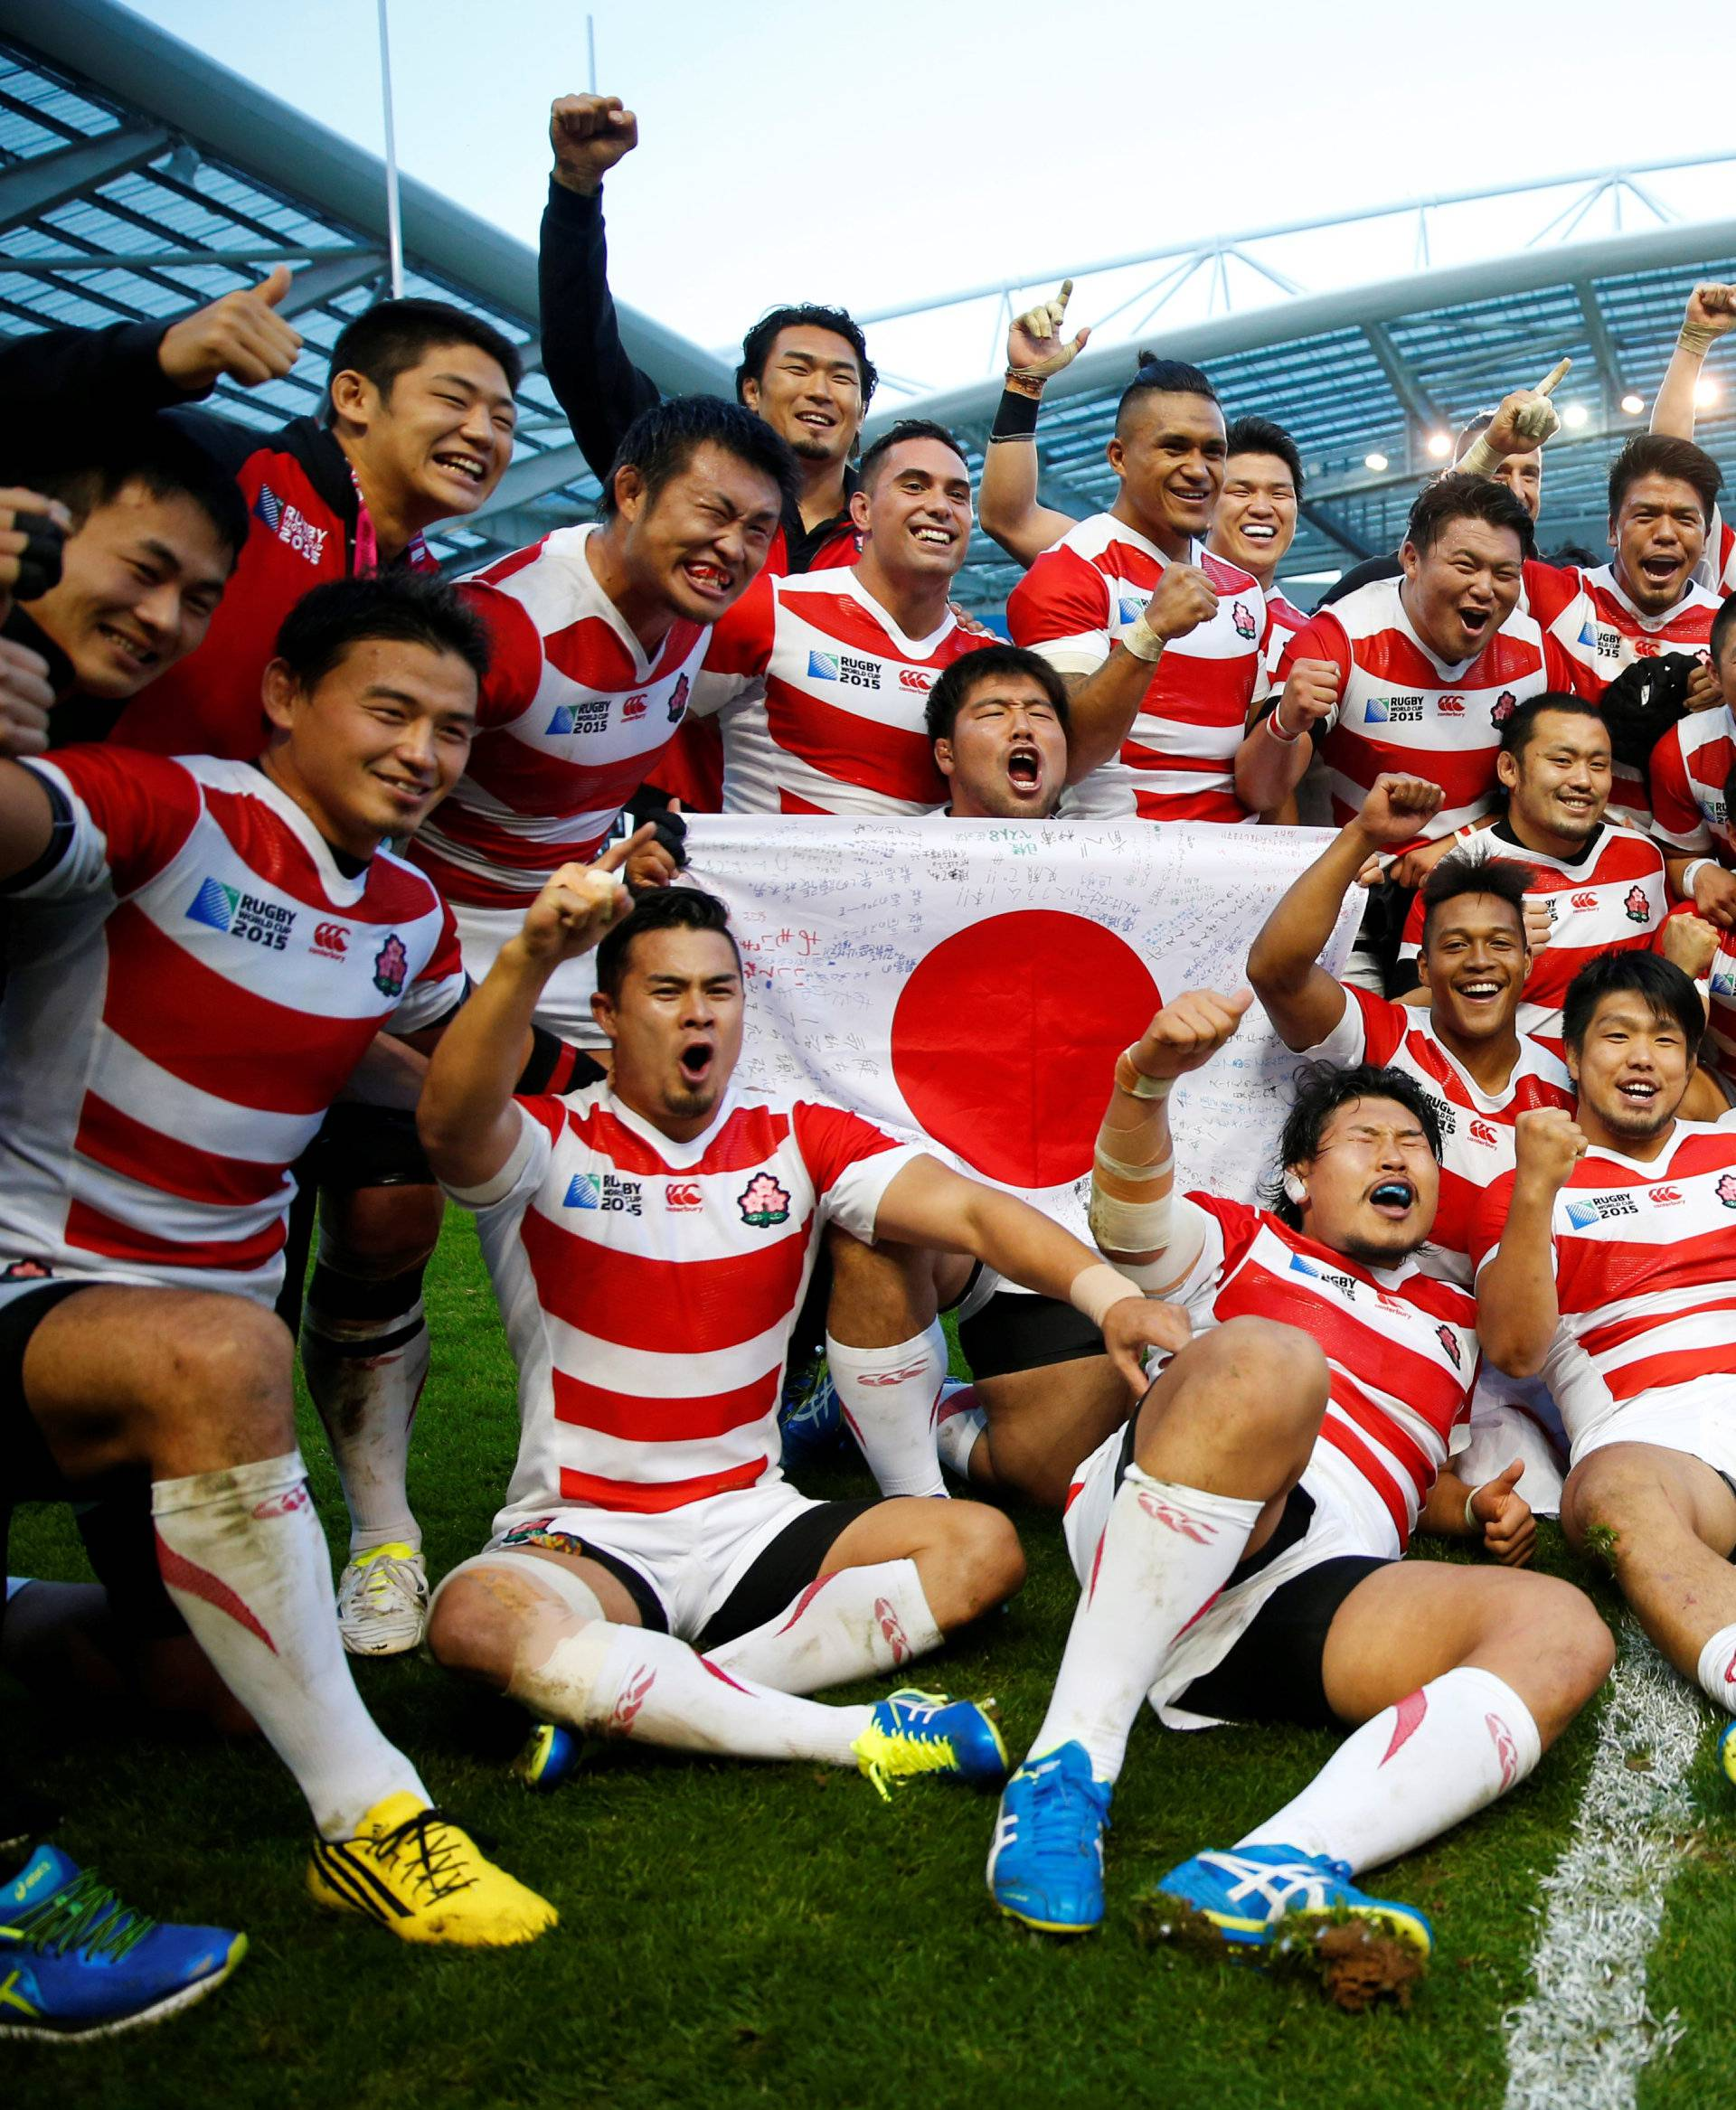 FILE PHOTO: South Africa v Japan - IRB Rugby World Cup 2015 Pool B